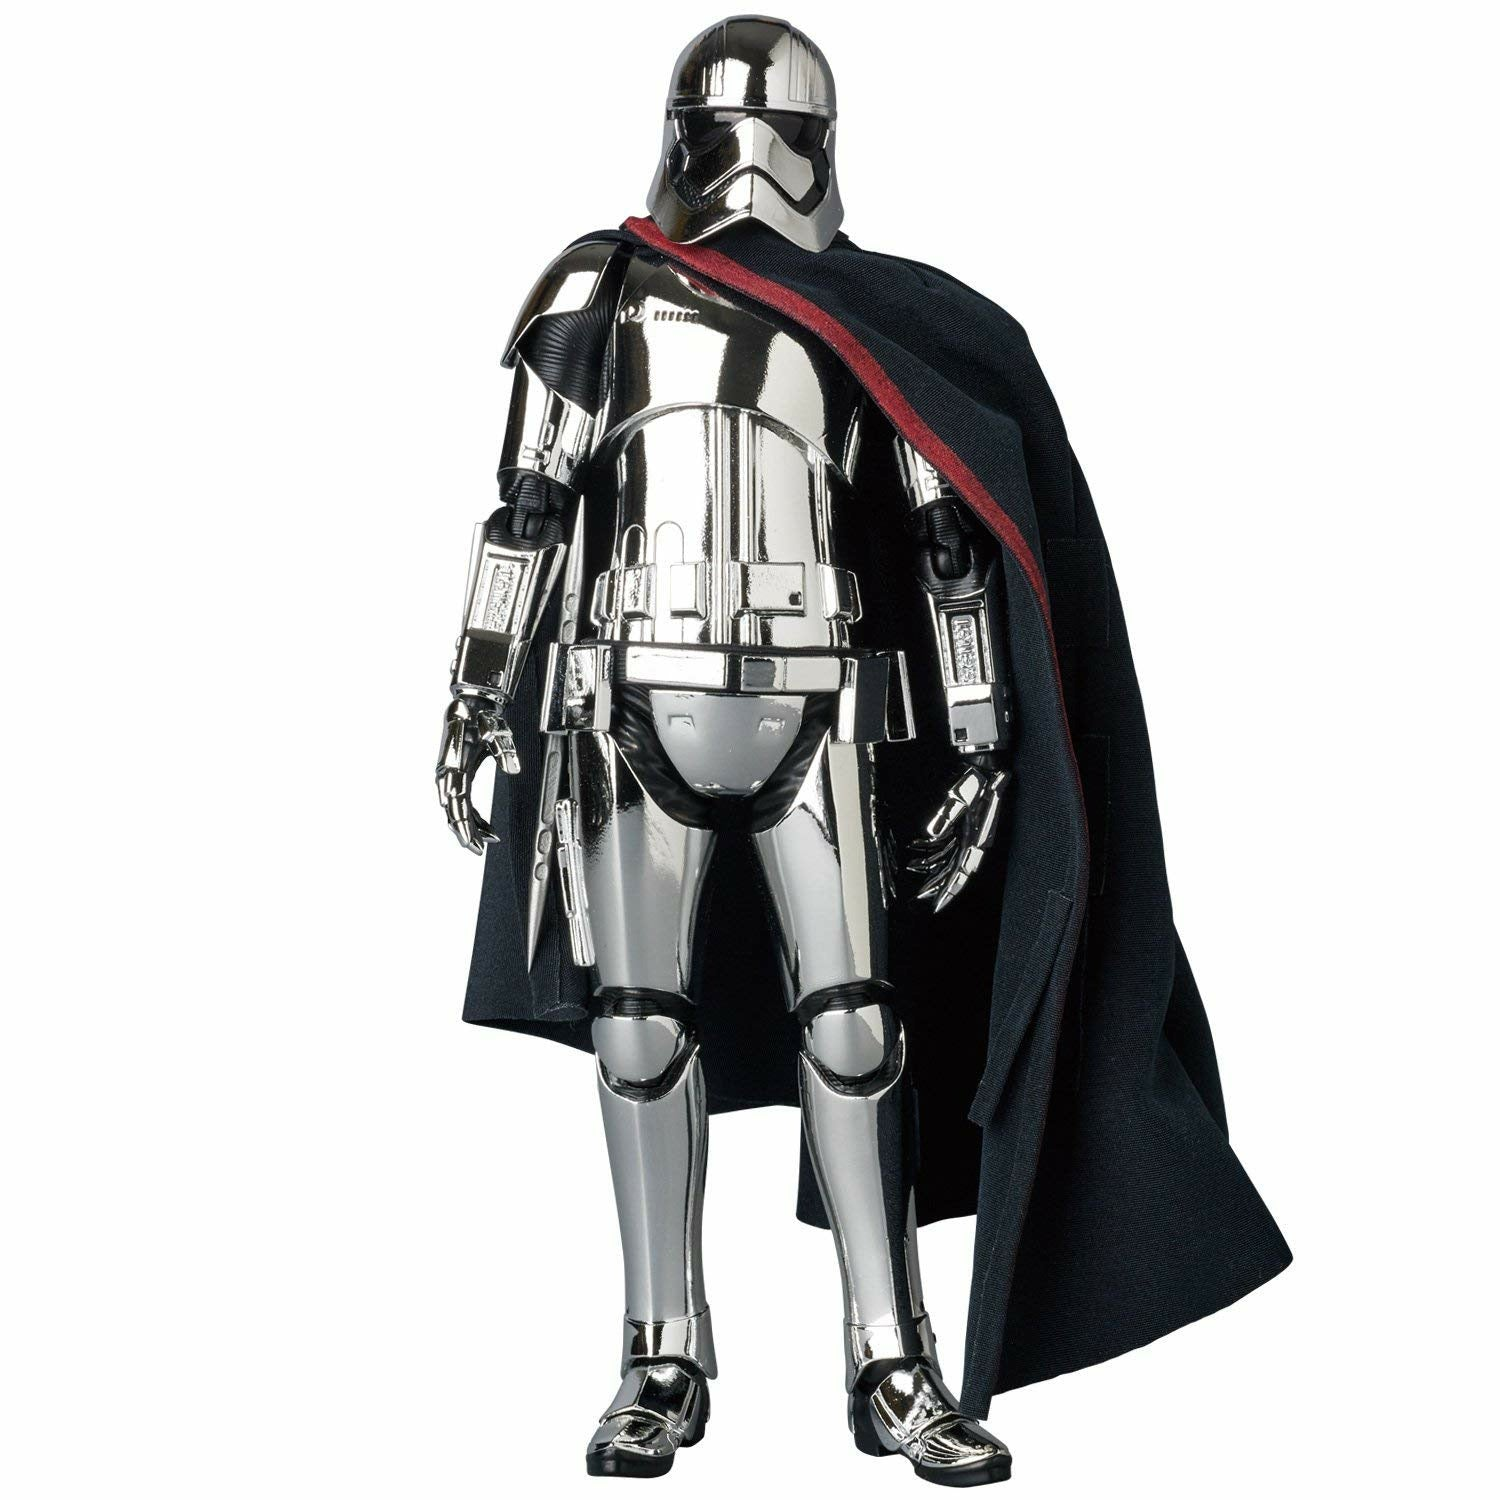 Star Wars: The Last Jedi MAFEX Captain Phasma Action Figure